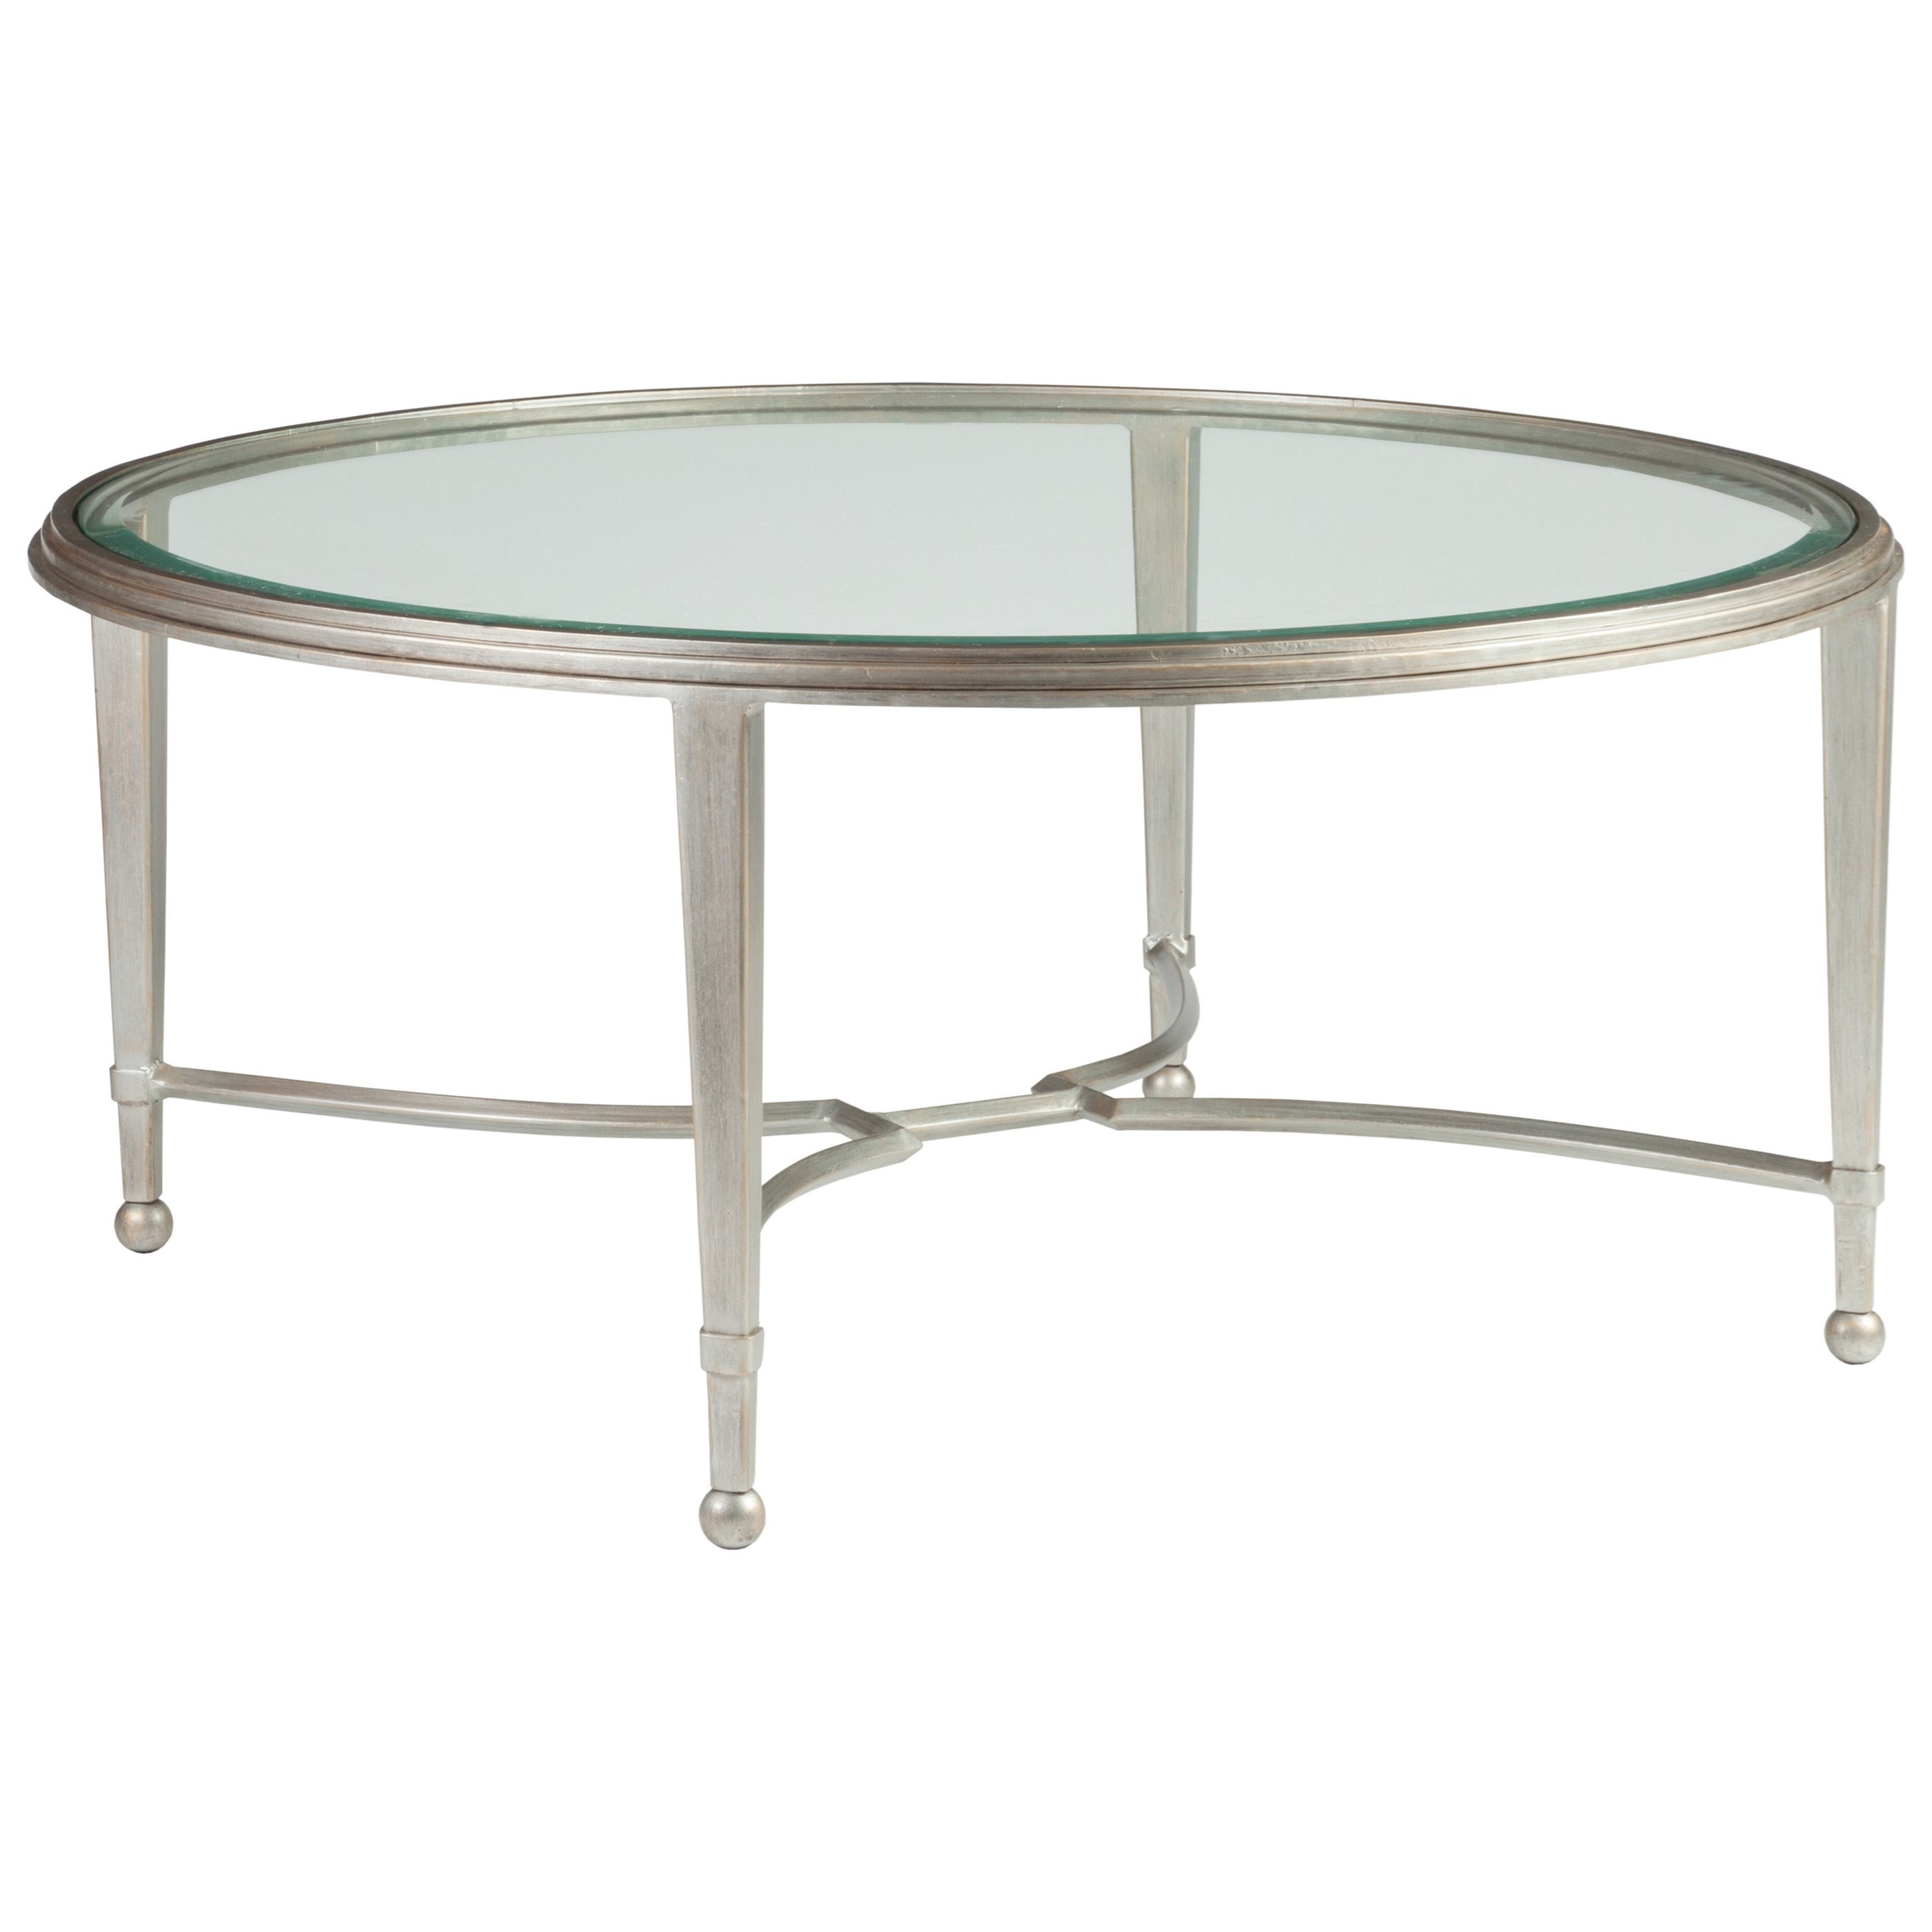 Metal Designs Sangiovese Round Cocktail Table by Artistica at Alison Craig Home Furnishings